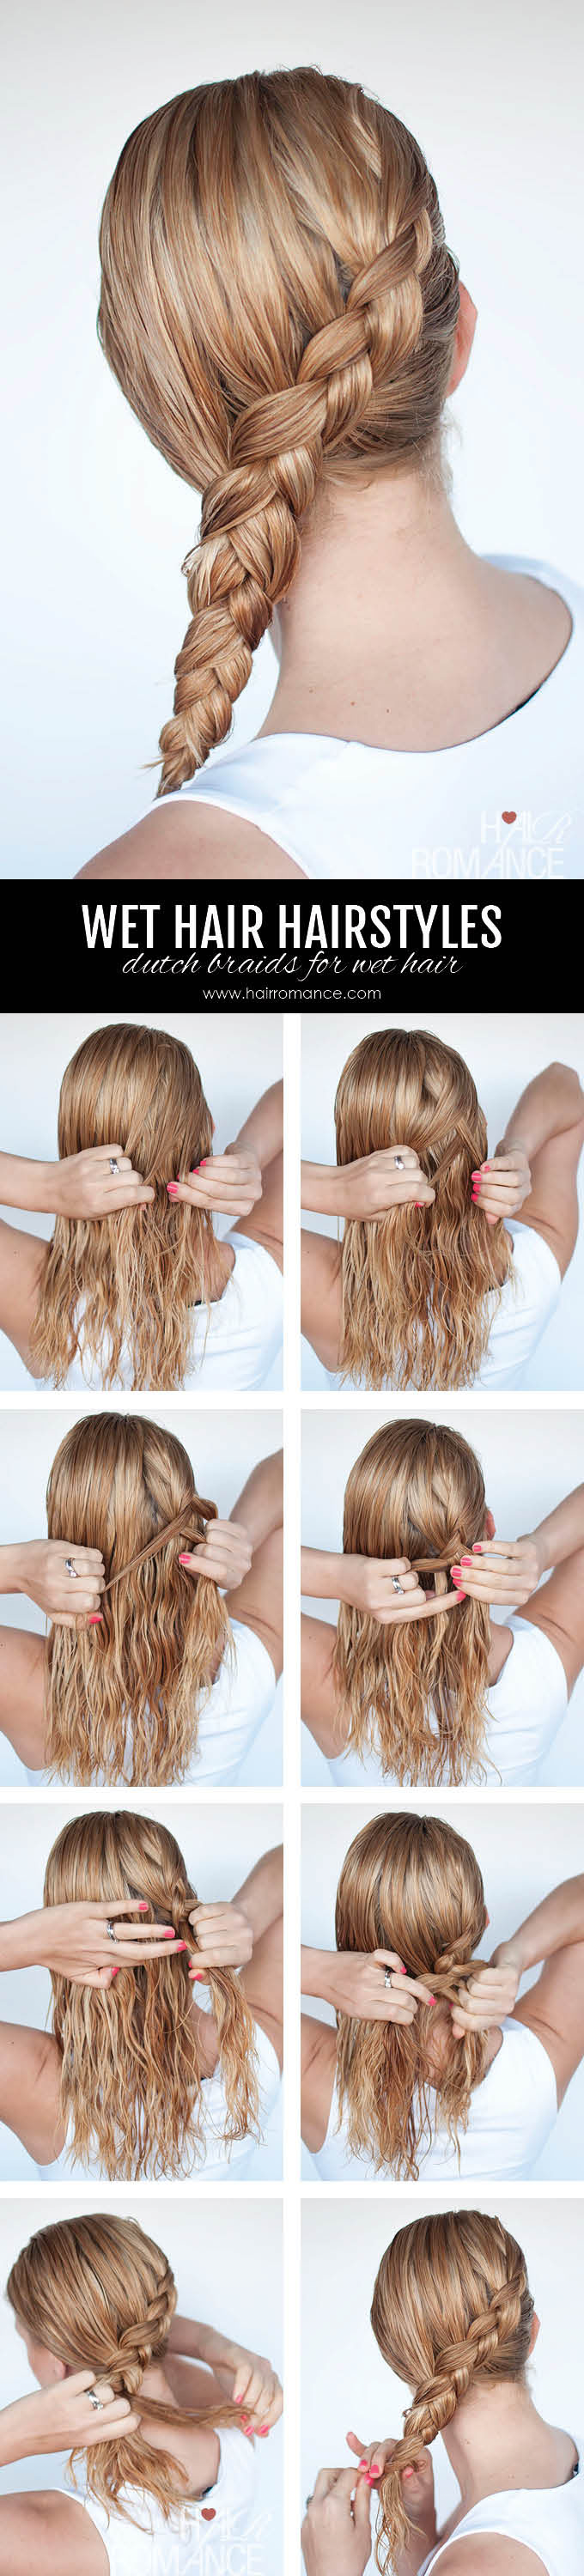 Hairstyles For Damp Hair : Hairstyles for wet hair simple braid tutorials you can